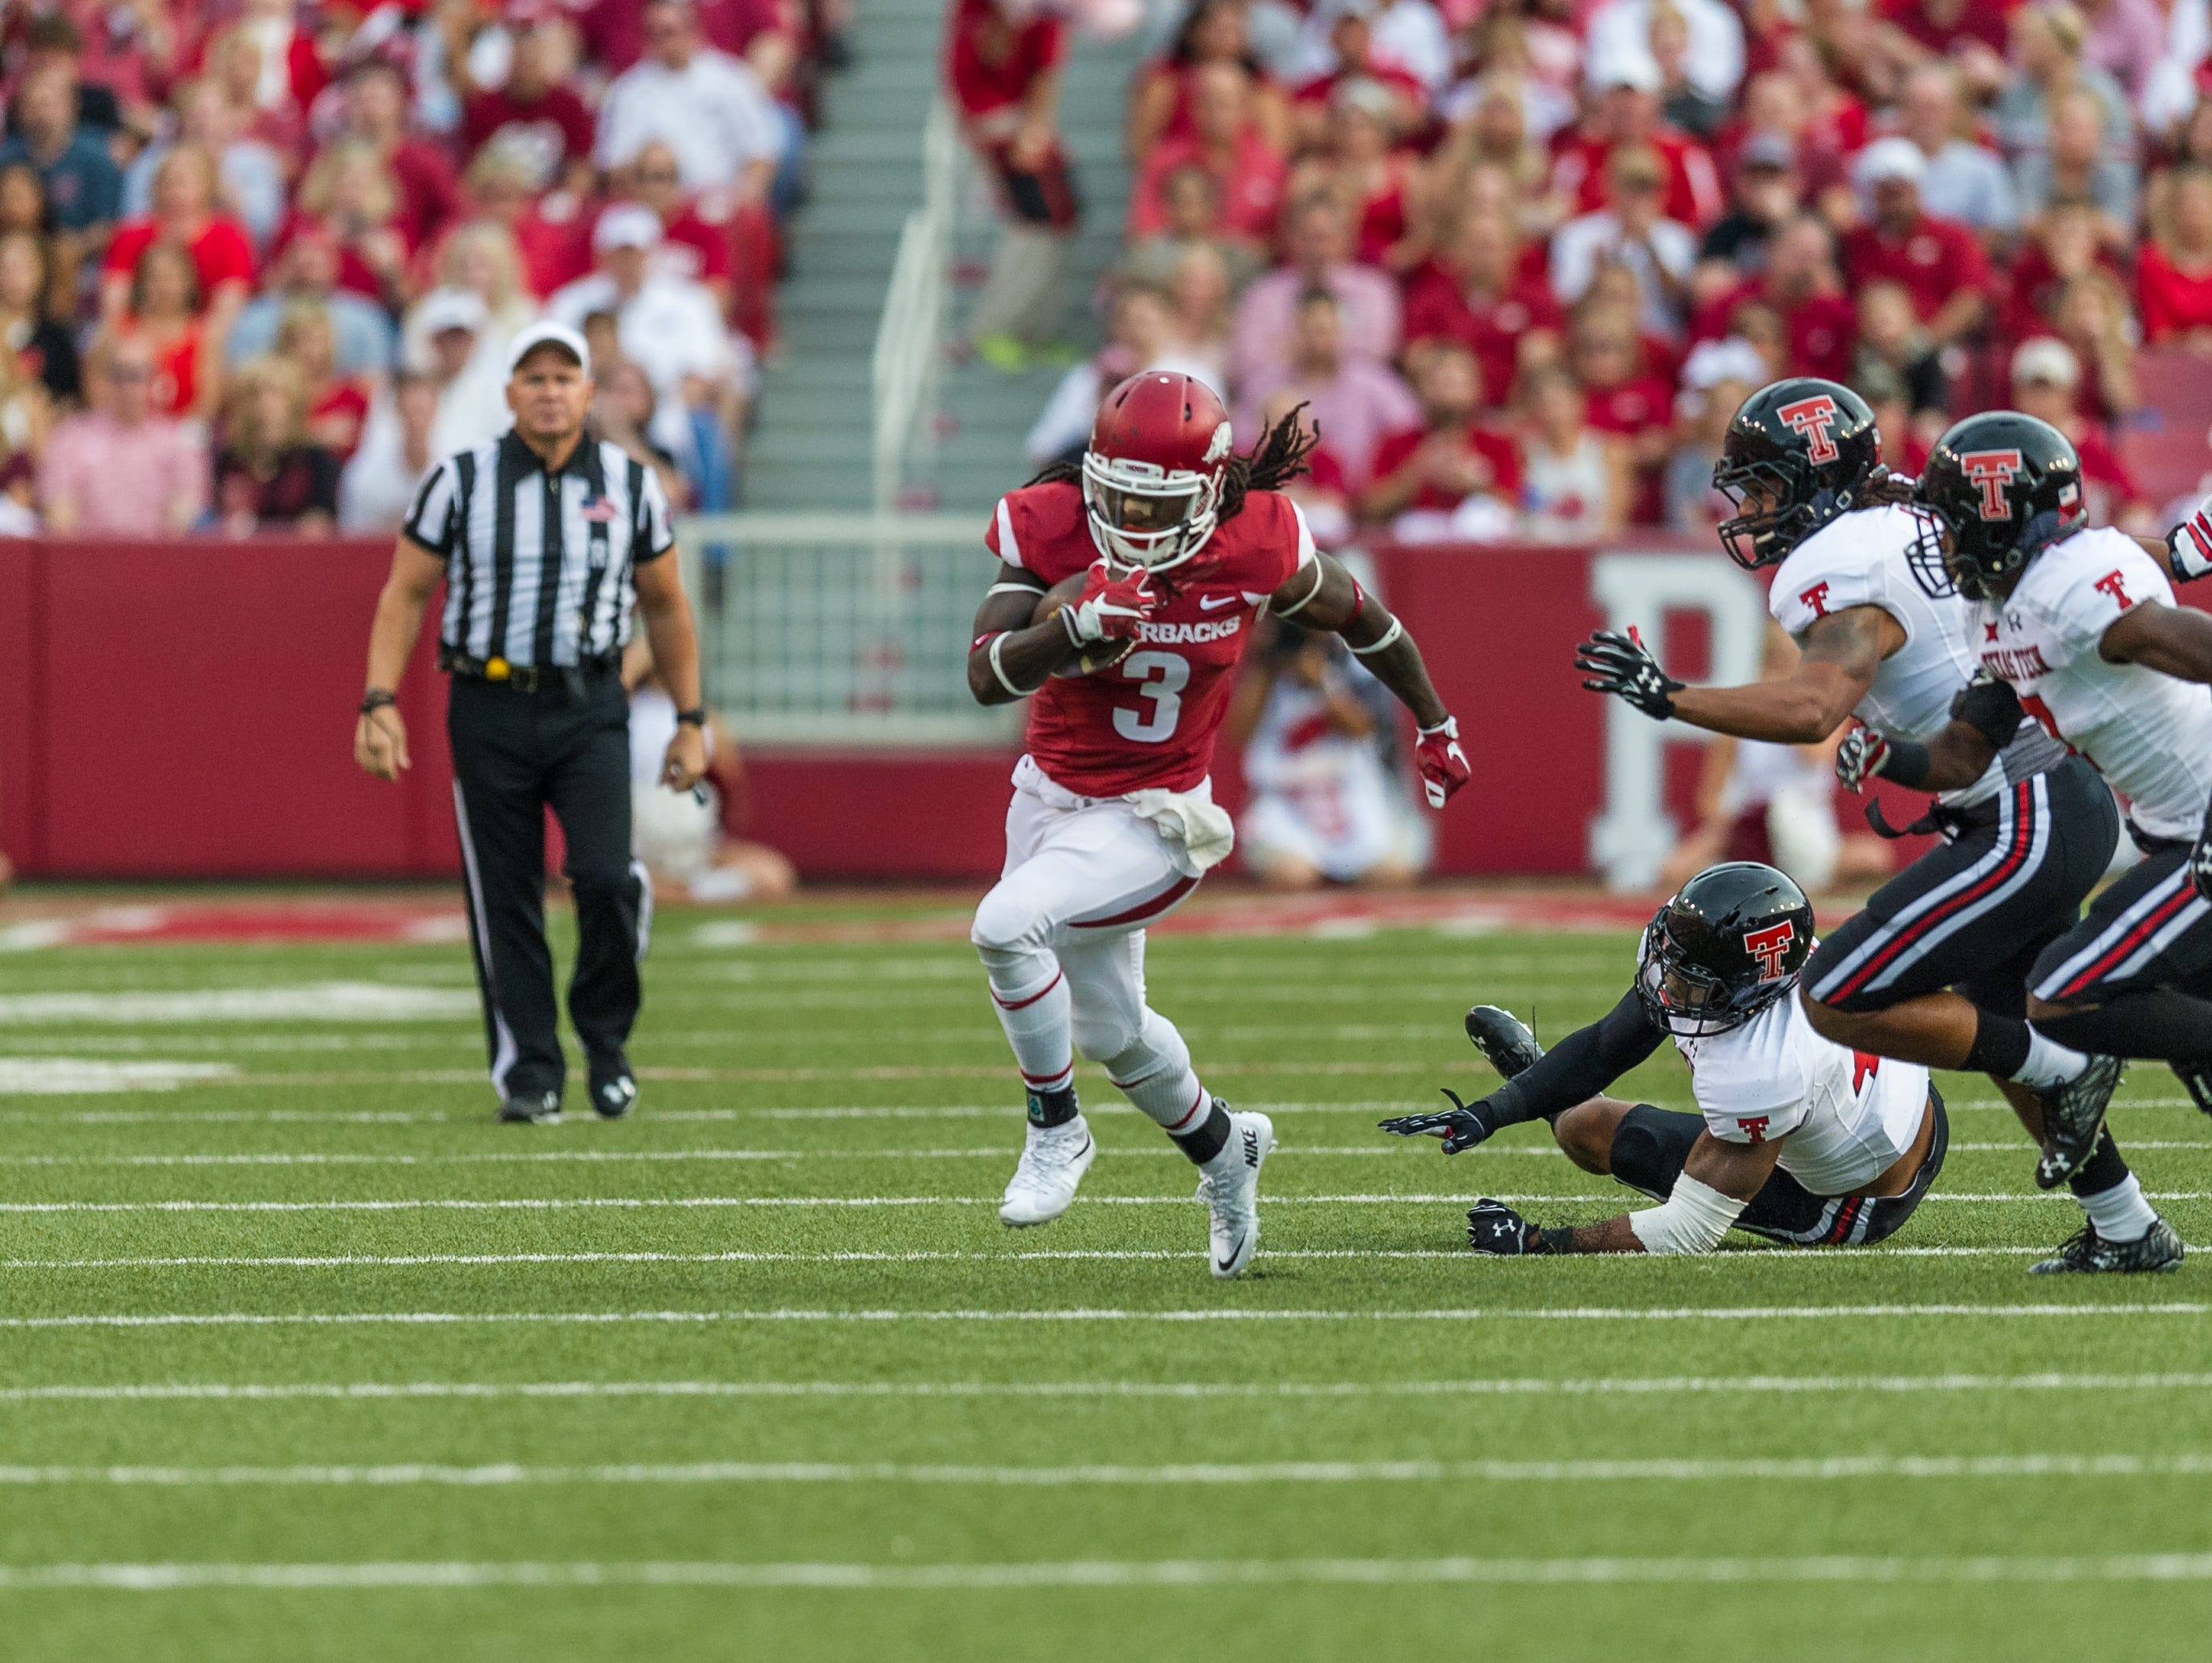 Alex Collins had 170 yards rushing on 28 carries to lead Arkansas in the loss to Texas Tech.